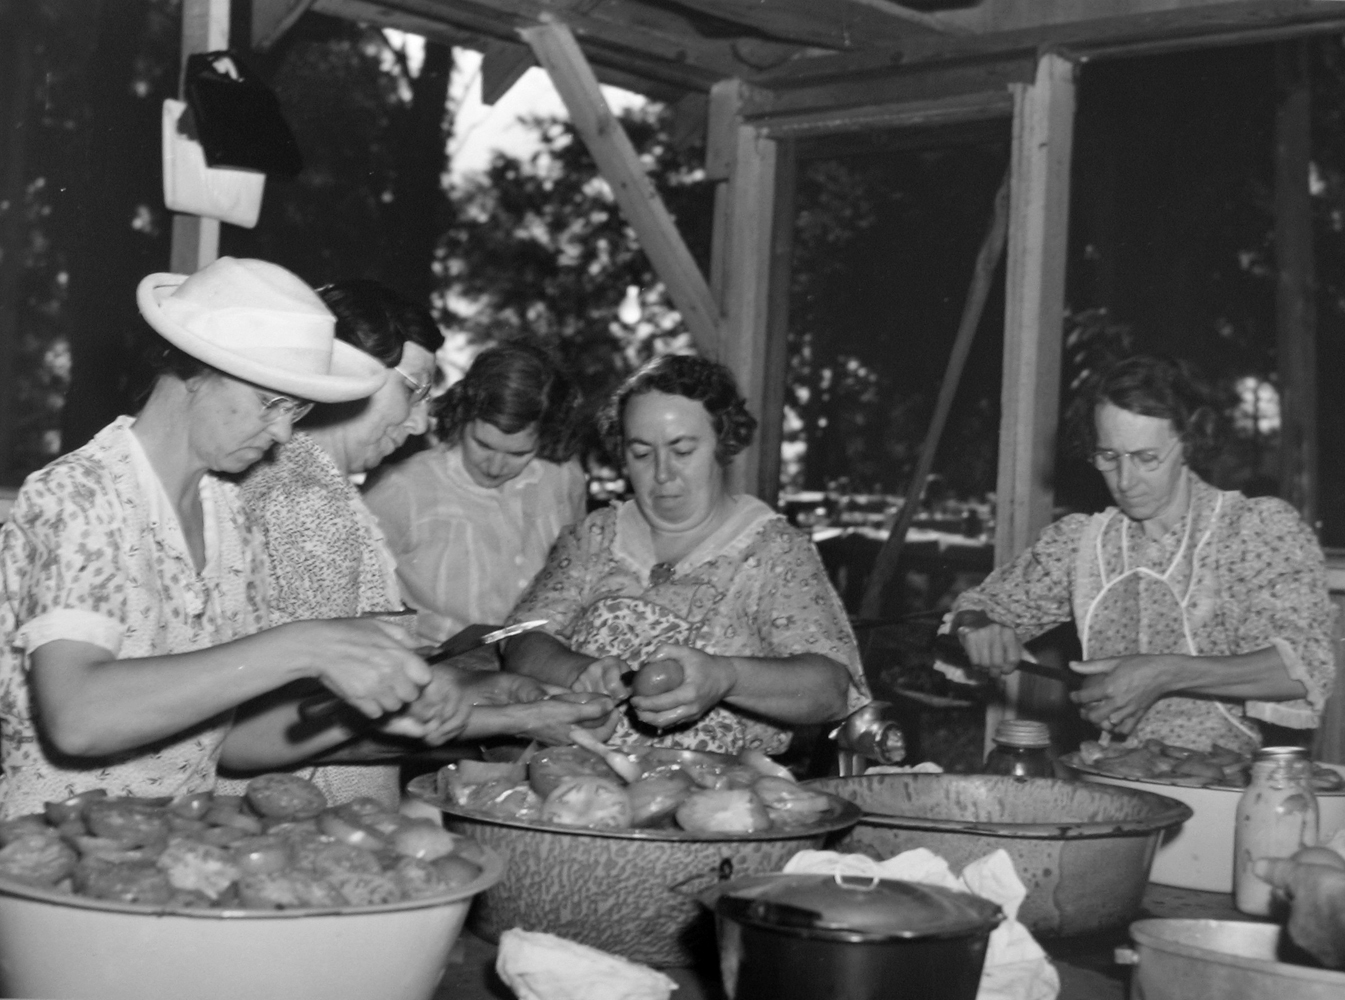 Marion Post Wolcott, Parishioners Peeling Tomatoes, KY, 1940 gelatin silver print, 11 x 14 inches